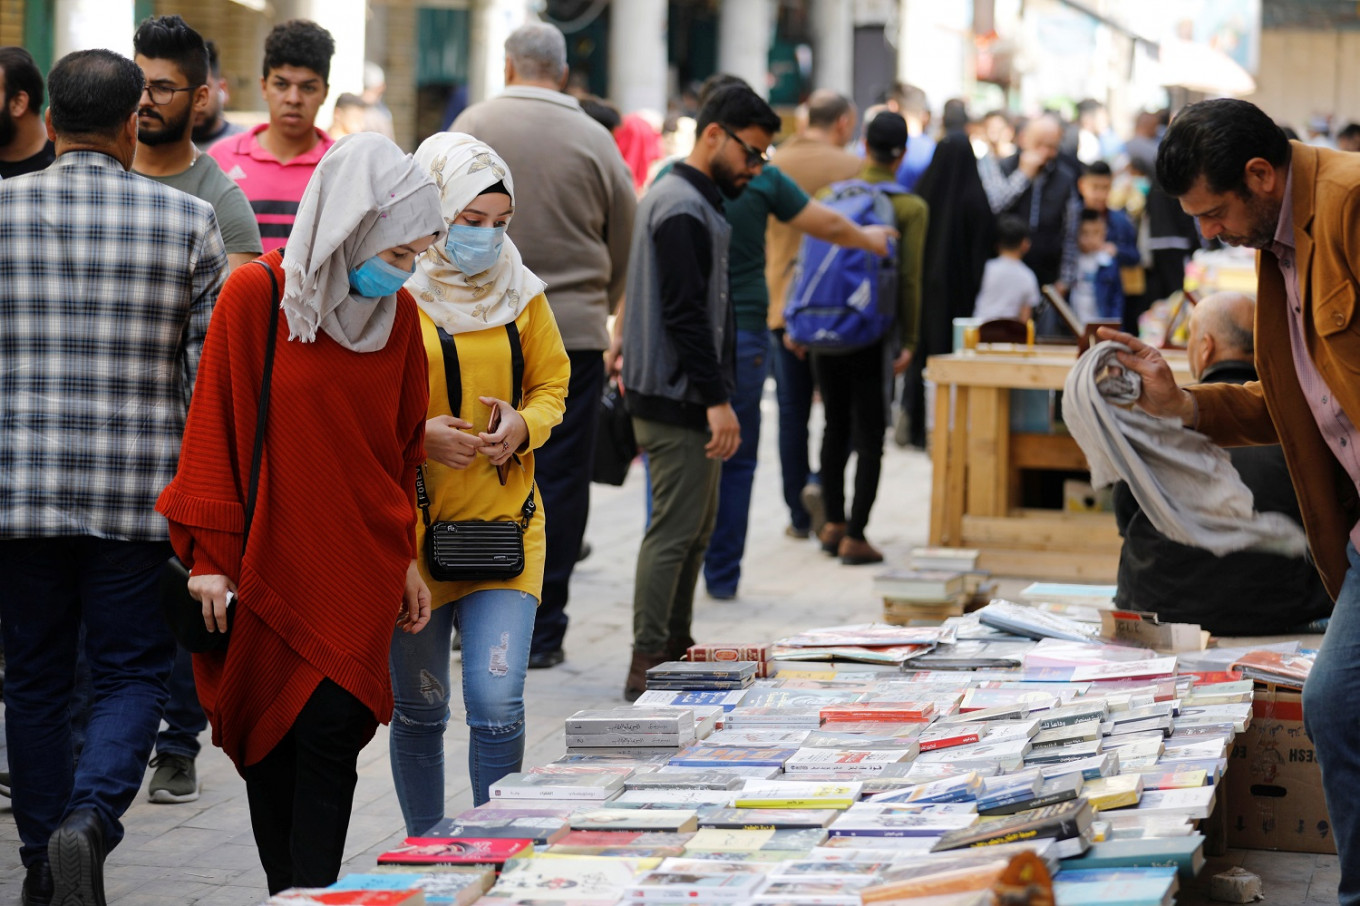 Baghdad's booksellers won't let coronavirus close them down